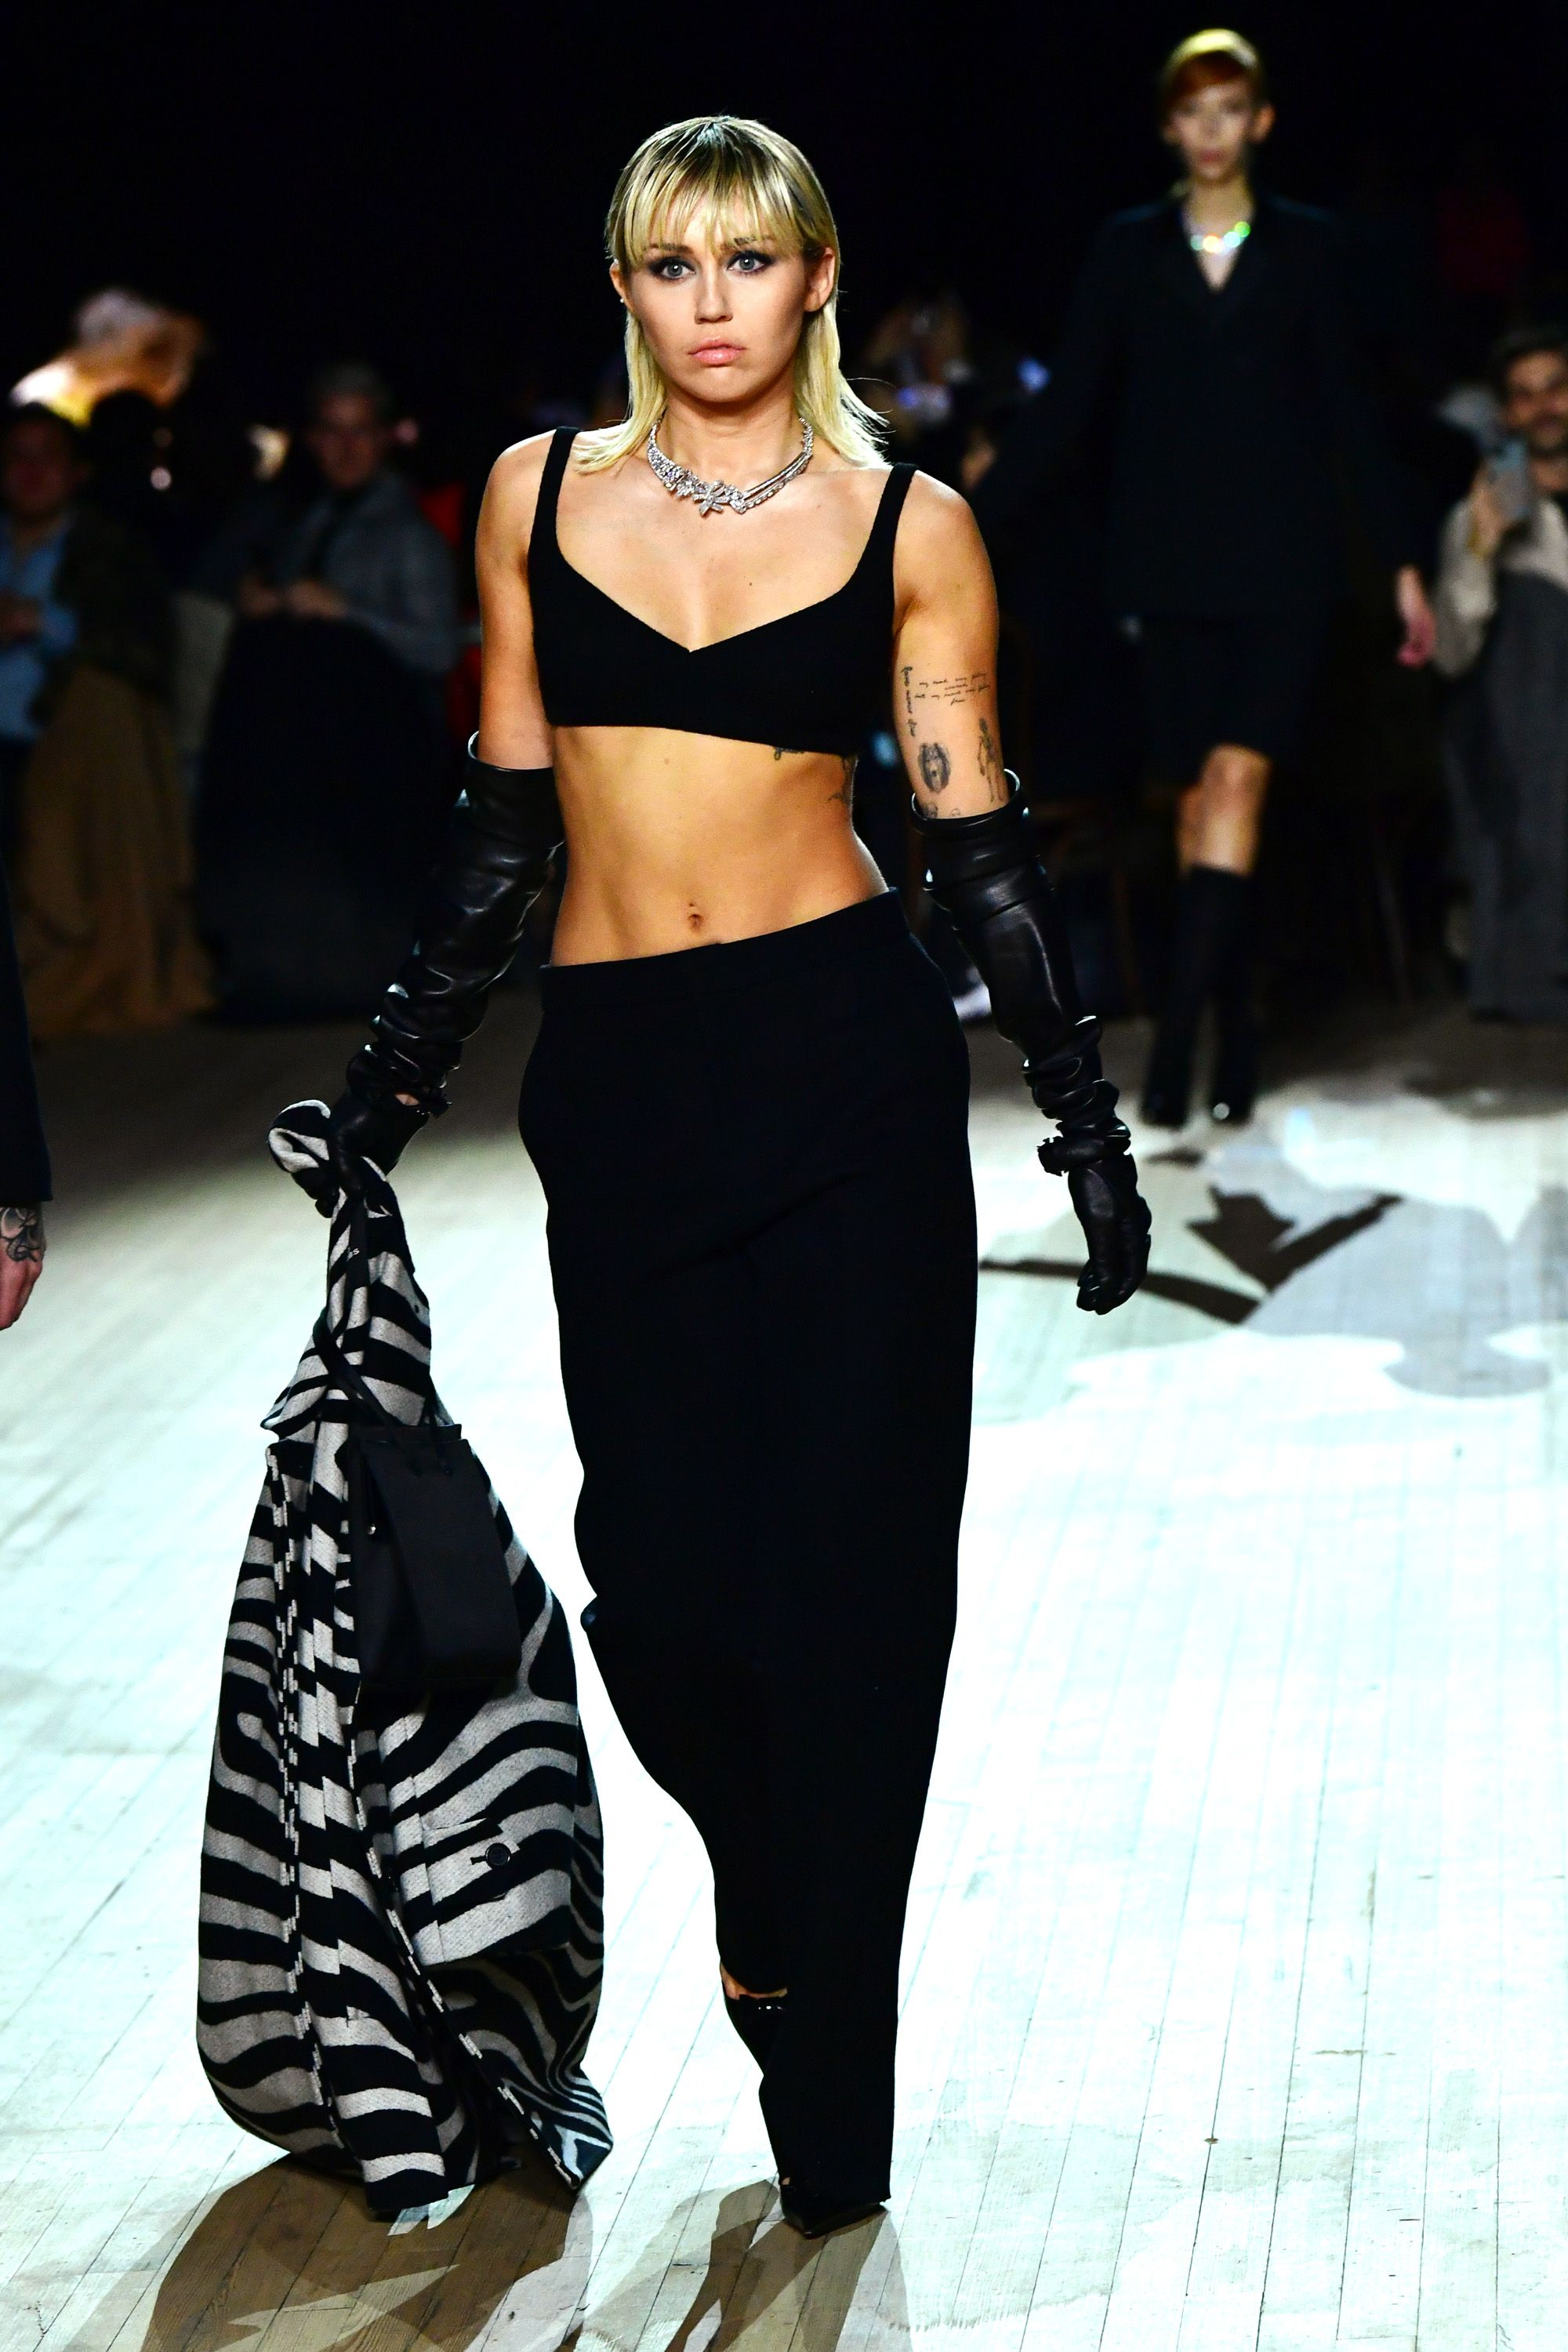 Miley Cyrus (and her abs) bring New York Fashion Week to a close on the Marc Jacobs catwalk